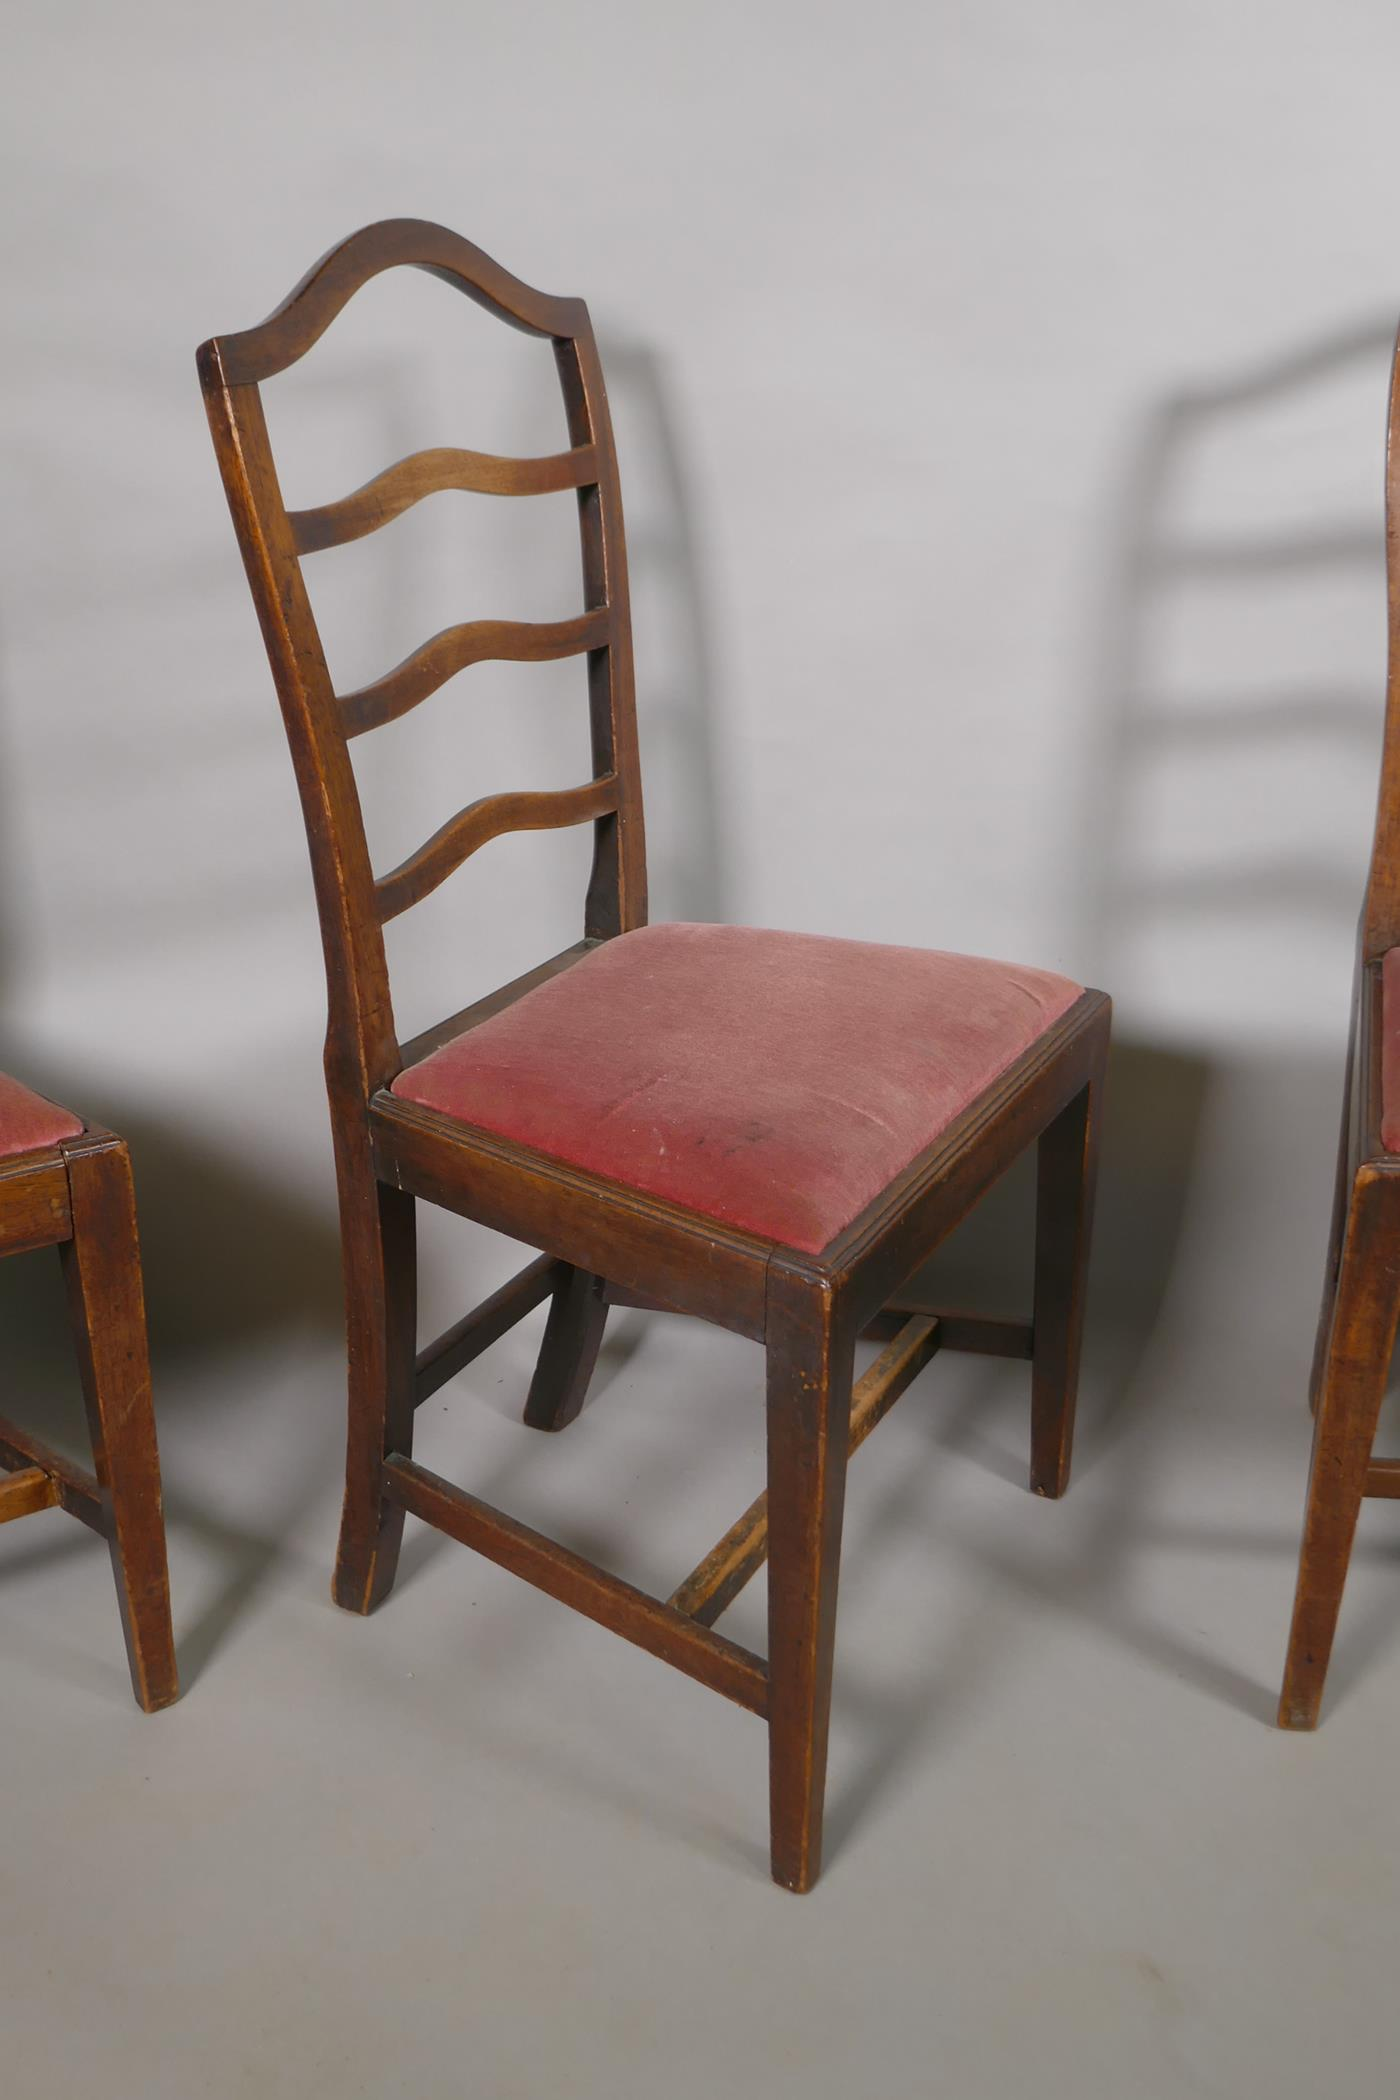 """A set of four C19th mahogany ladder back chairs with drop in seats, 38"""" high - Image 2 of 2"""